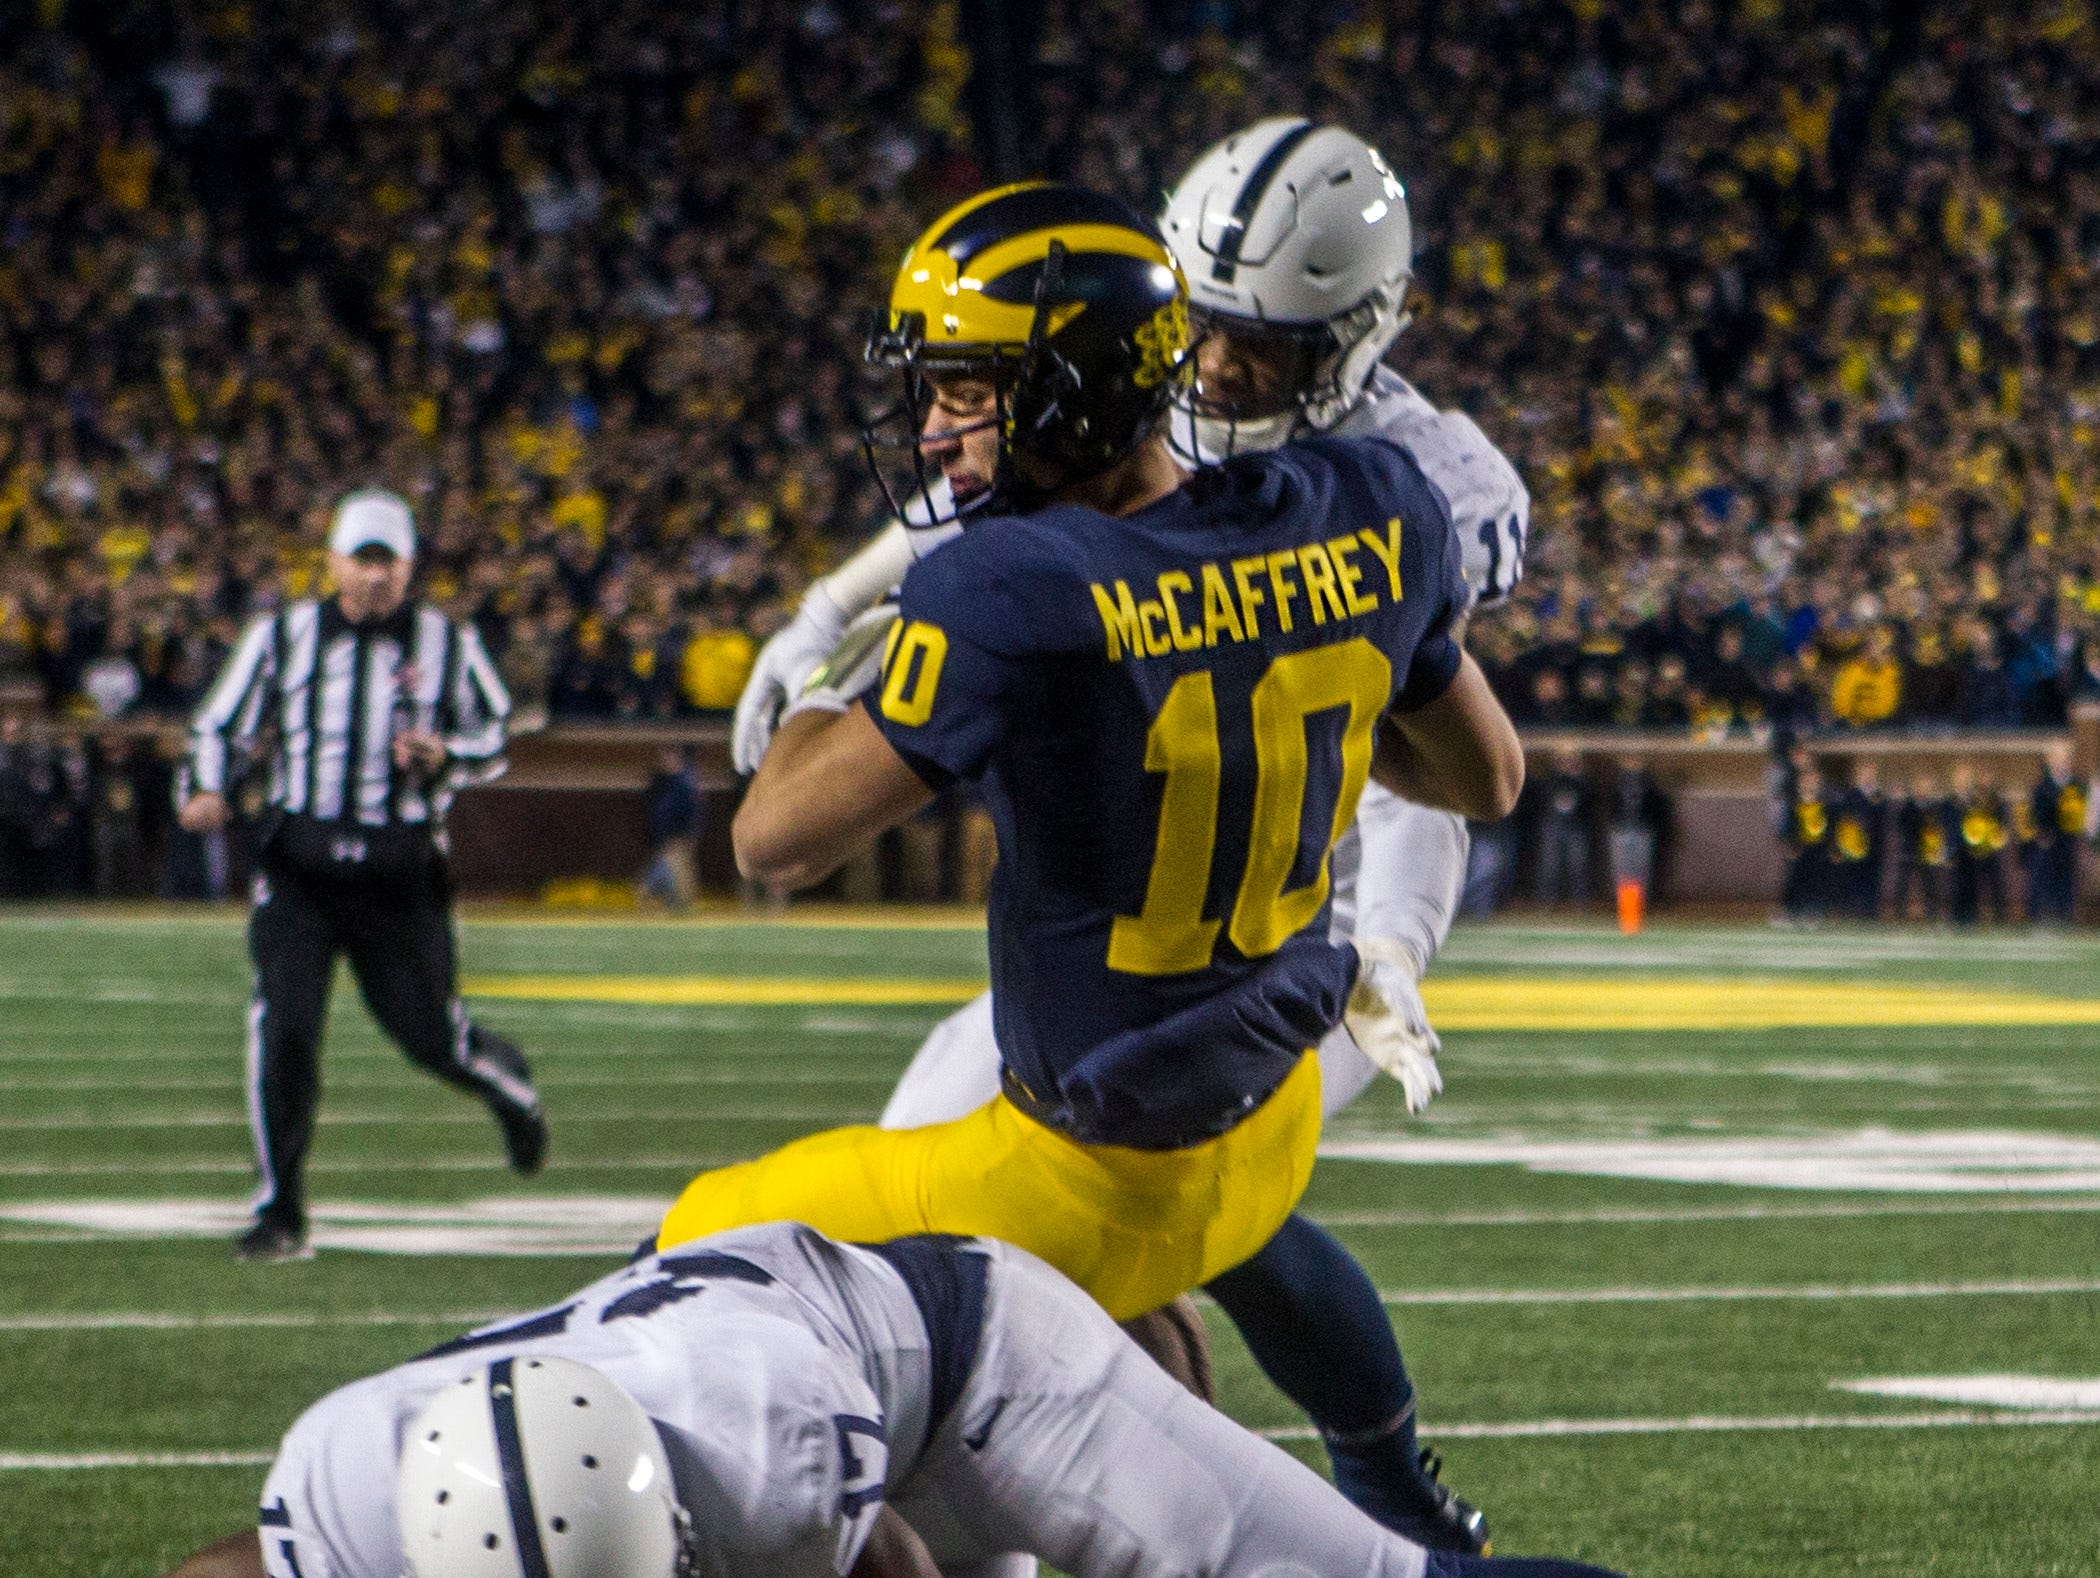 Michigan quarterback Dylan McCaffrey (10) is forced out of bounds short of the goal line by Penn State safety Garrett Taylor (17) and linebacker Micah Parsons (11), in the fourth quarter of an NCAA college football game in Ann Arbor, Mich., Saturday, Nov. 3, 2018. (AP Photo/Tony Ding)